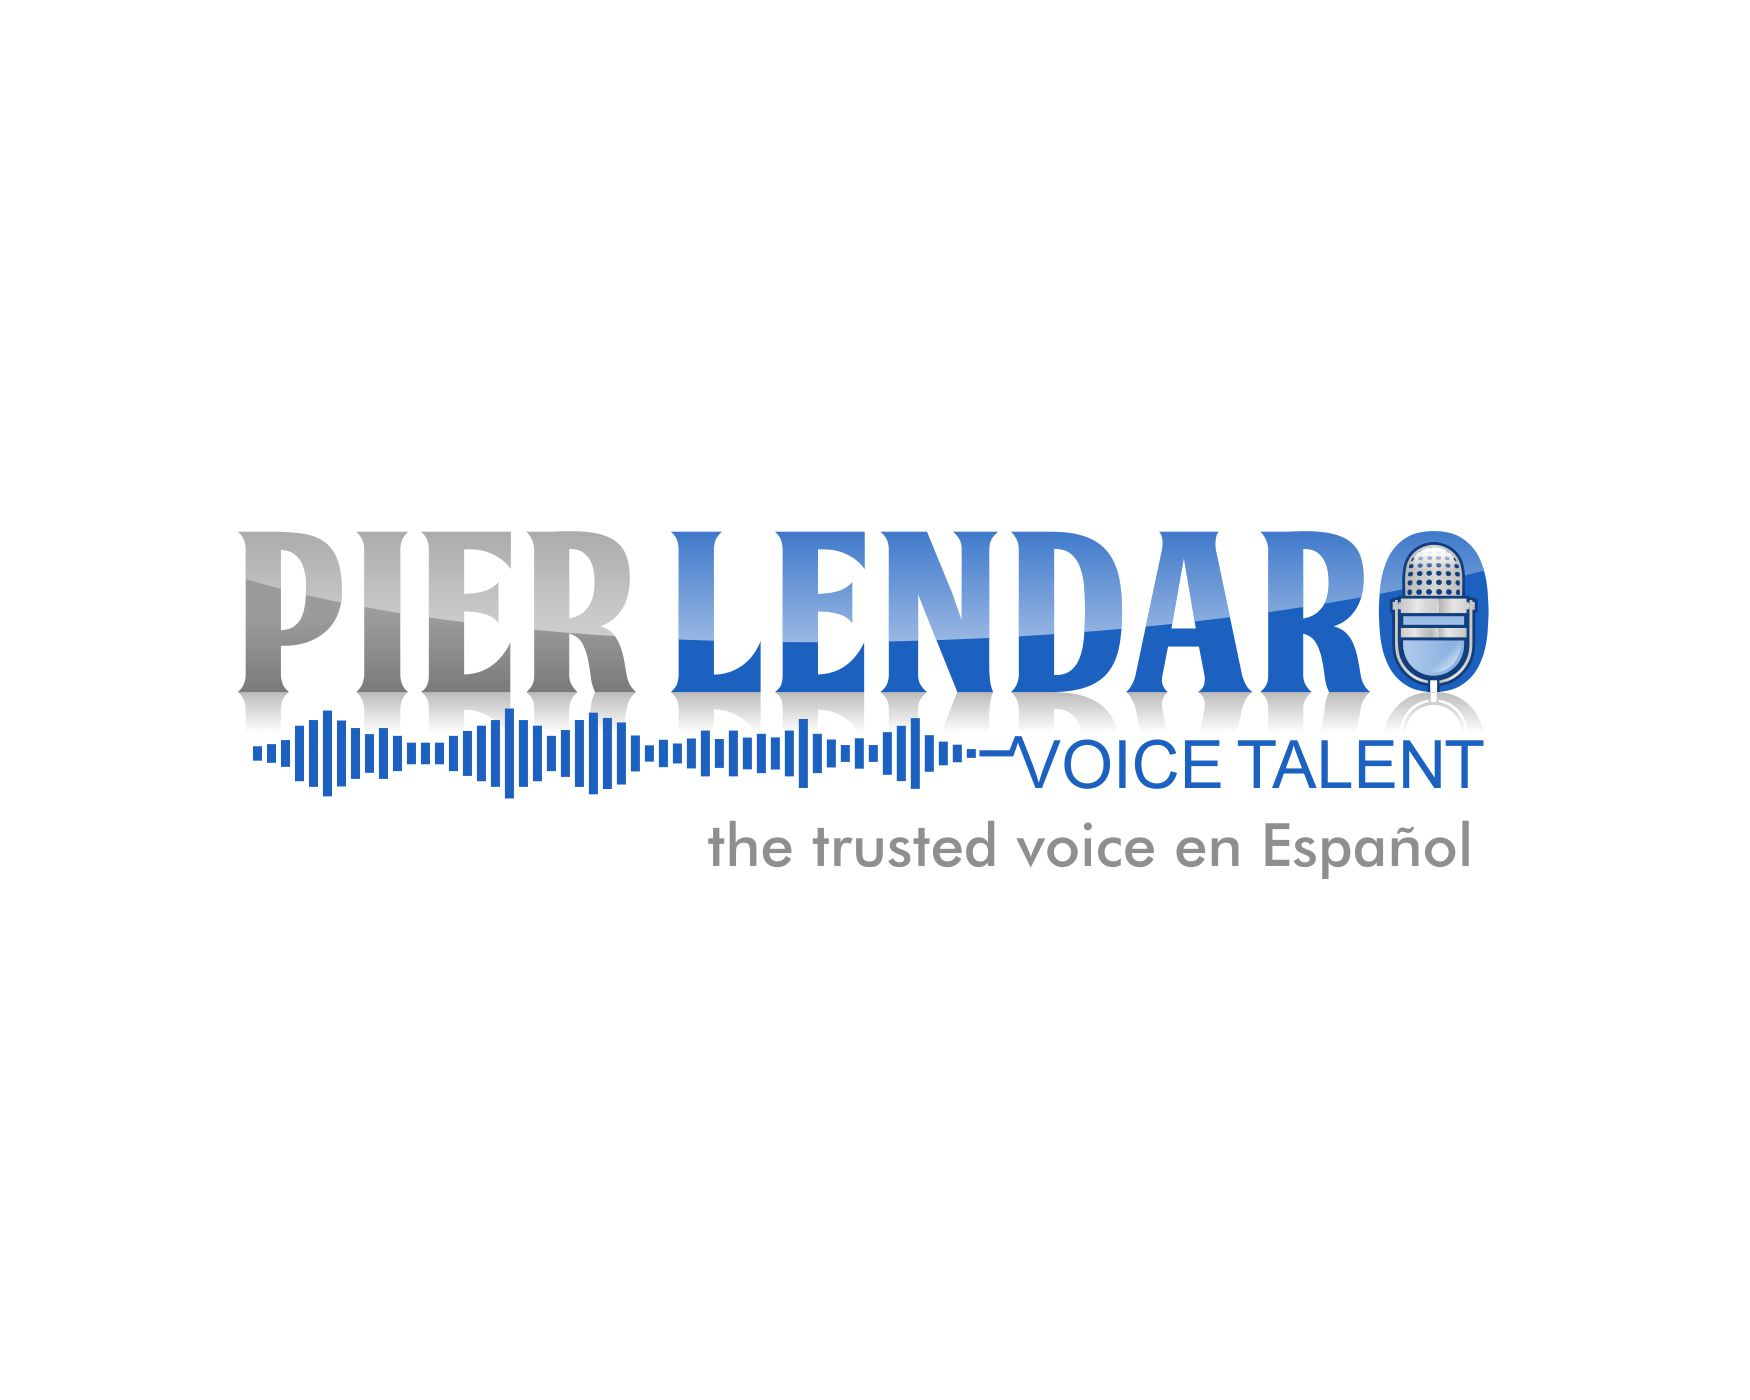 Voice Over in Spanish and English